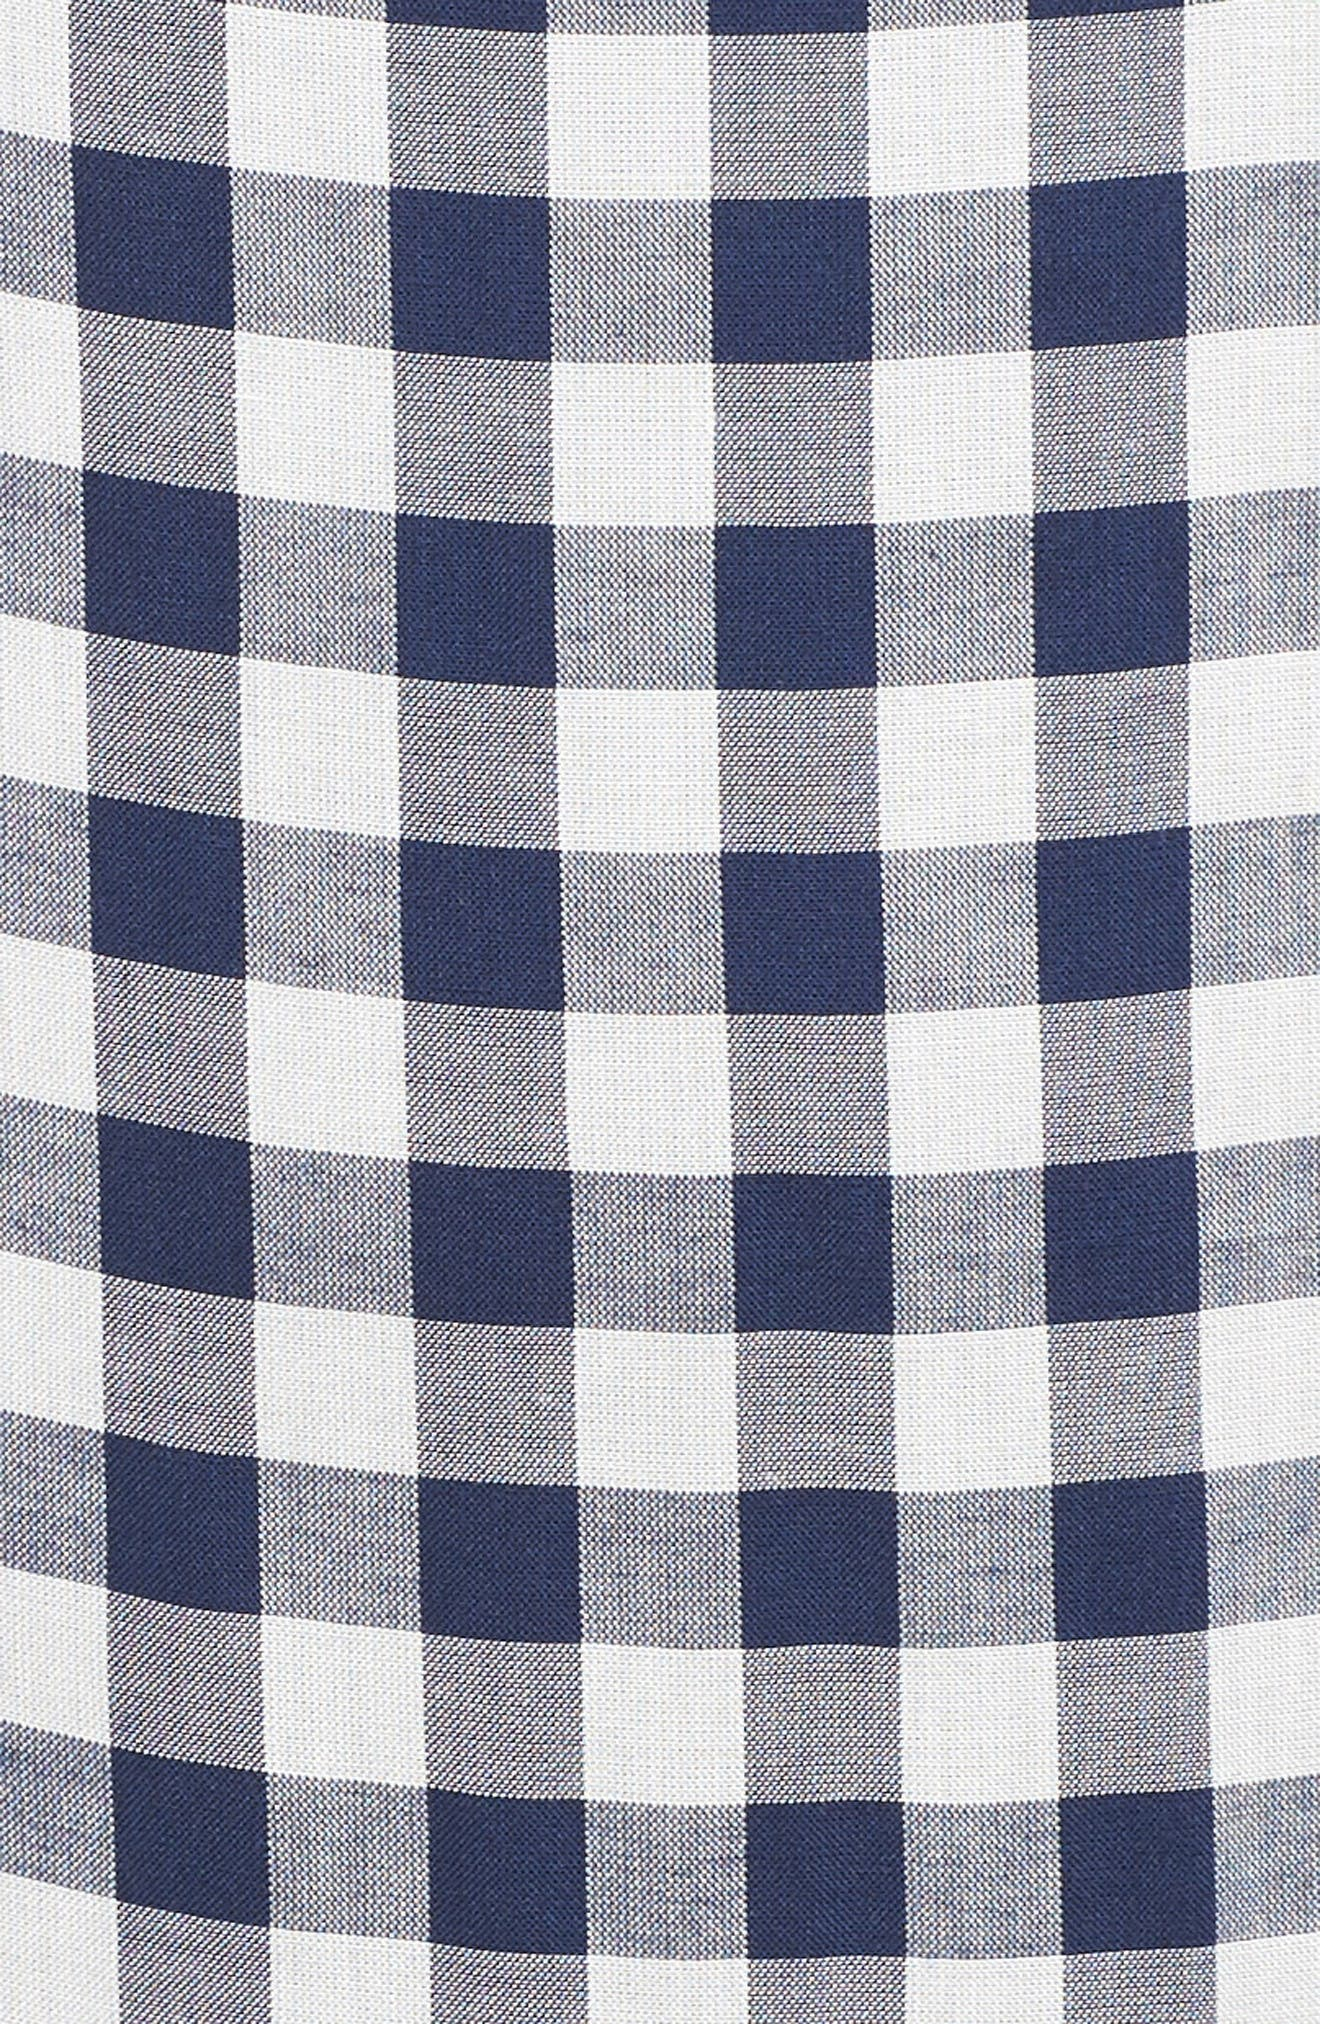 Embroidered Check Shift Dress,                             Alternate thumbnail 6, color,                             411